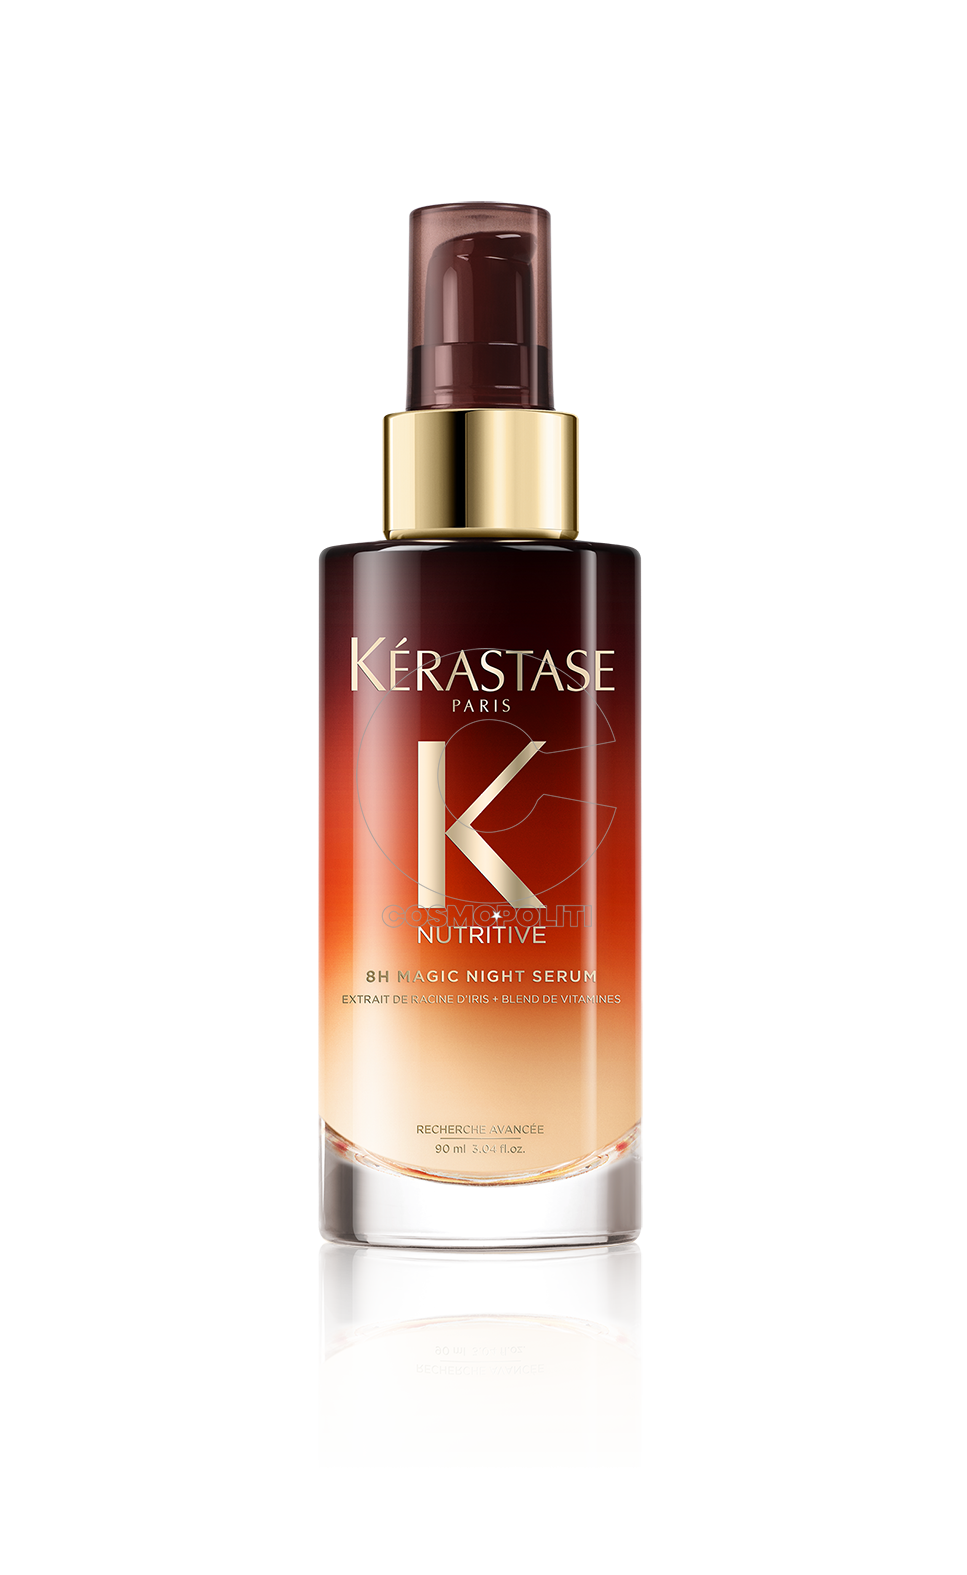 Kerastase - Nutritive - 8H Magic Night Serum - BD